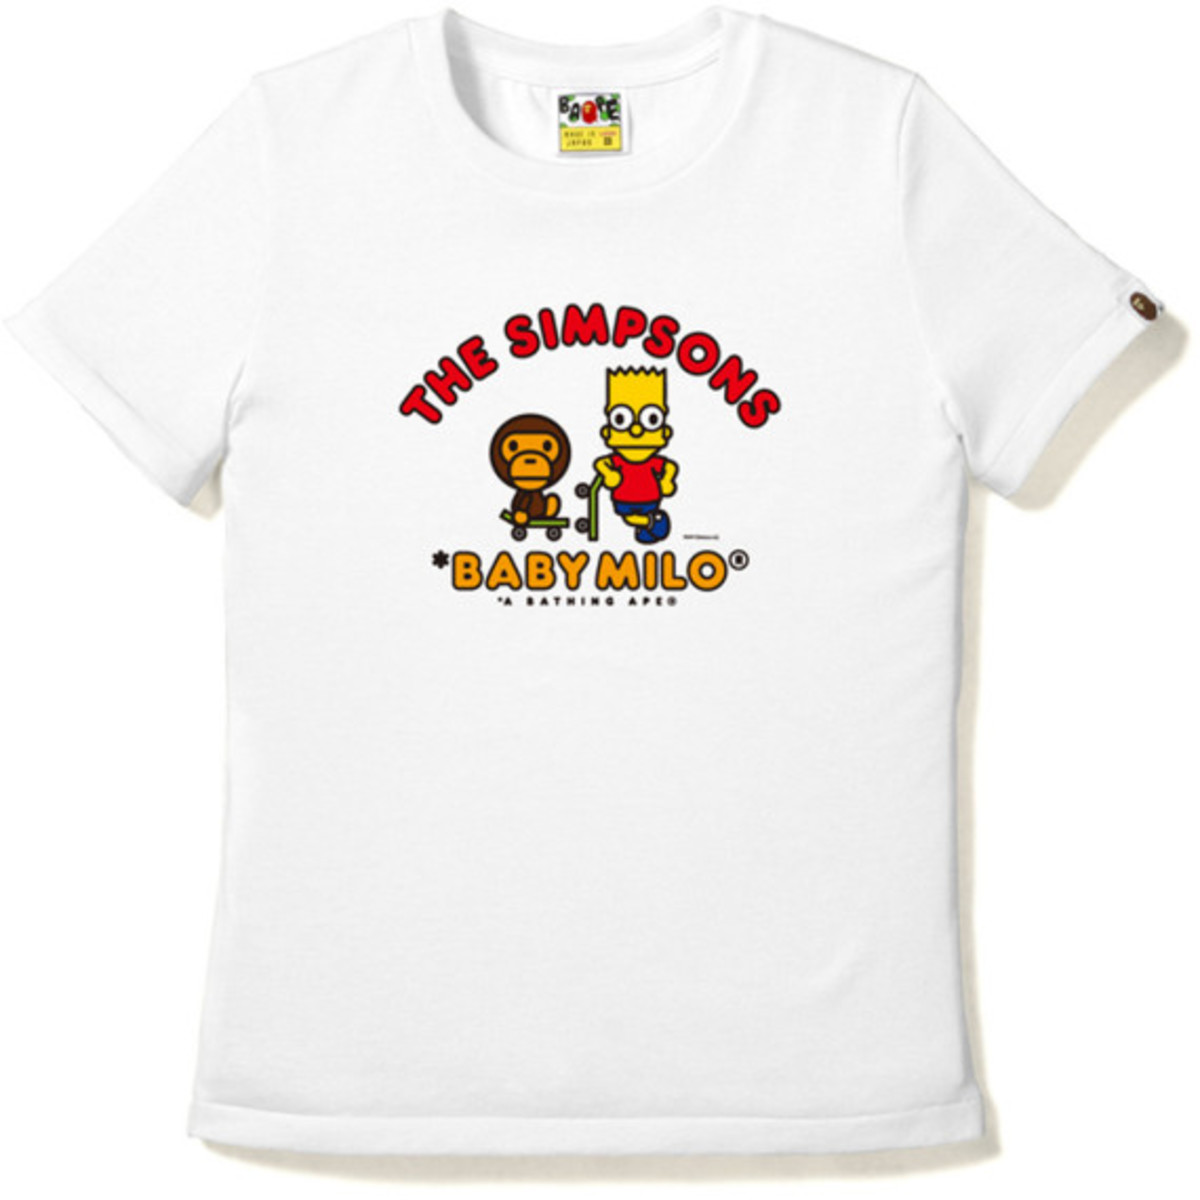 the-simpsons-bape-collection-available-16